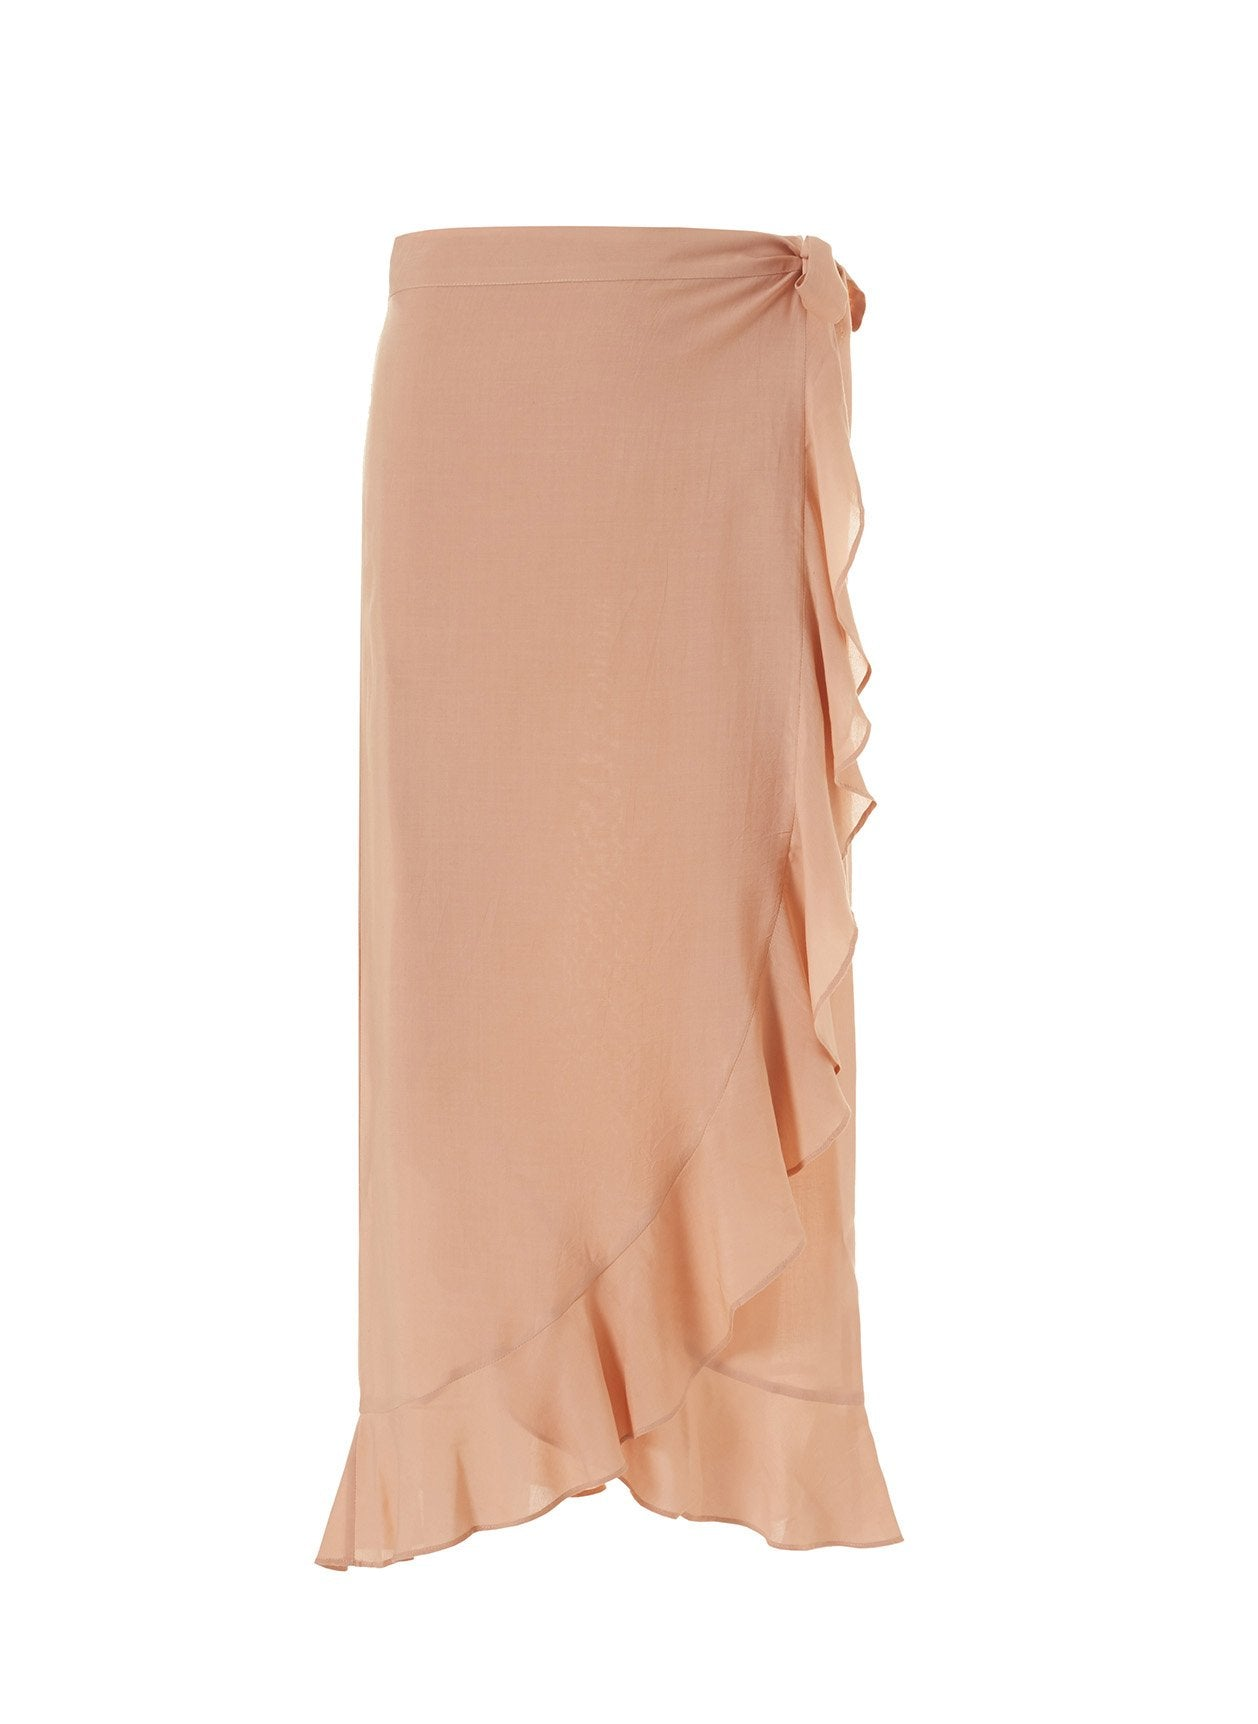 Danni Tan Long Skirt